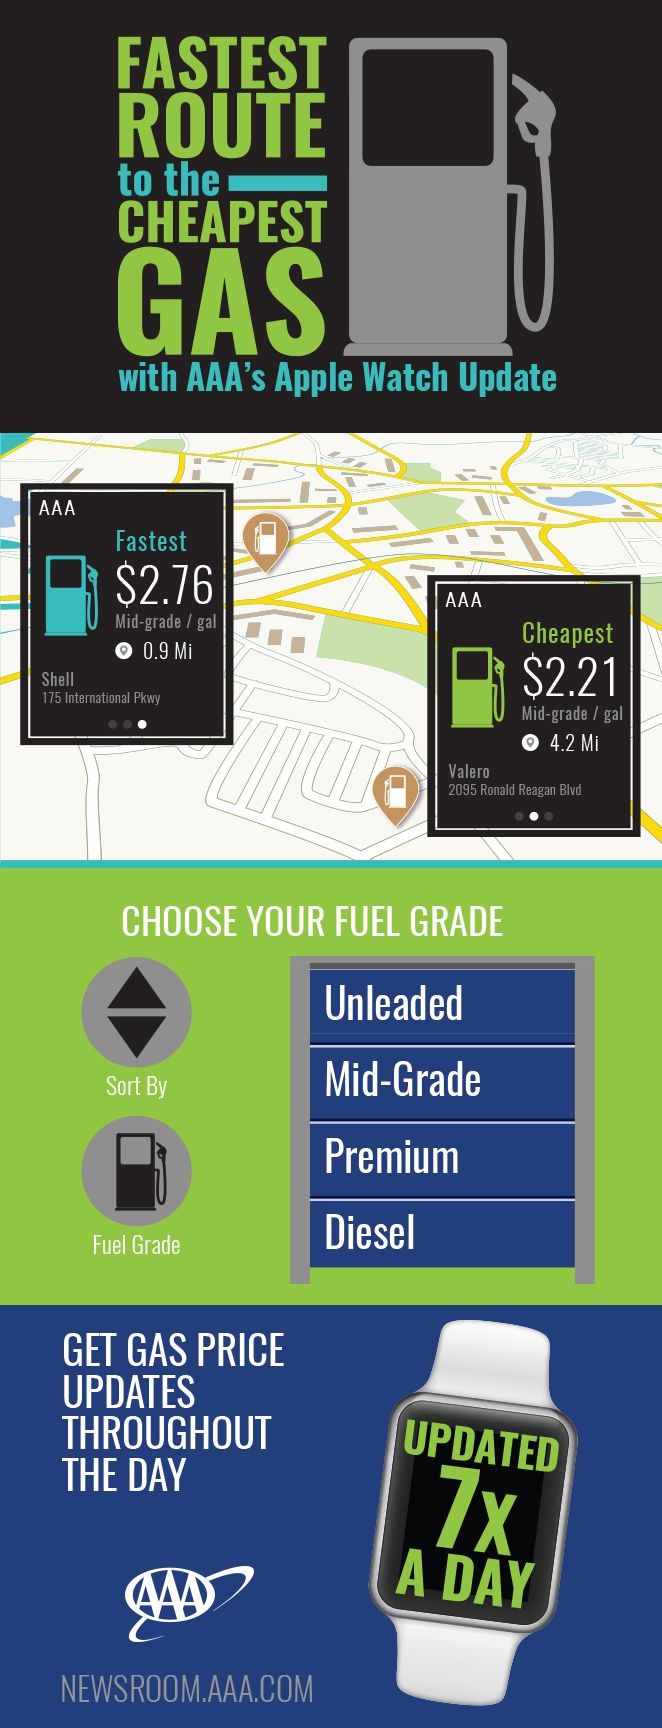 Find the cheapest gas prices near you with the AAA Mobile App.